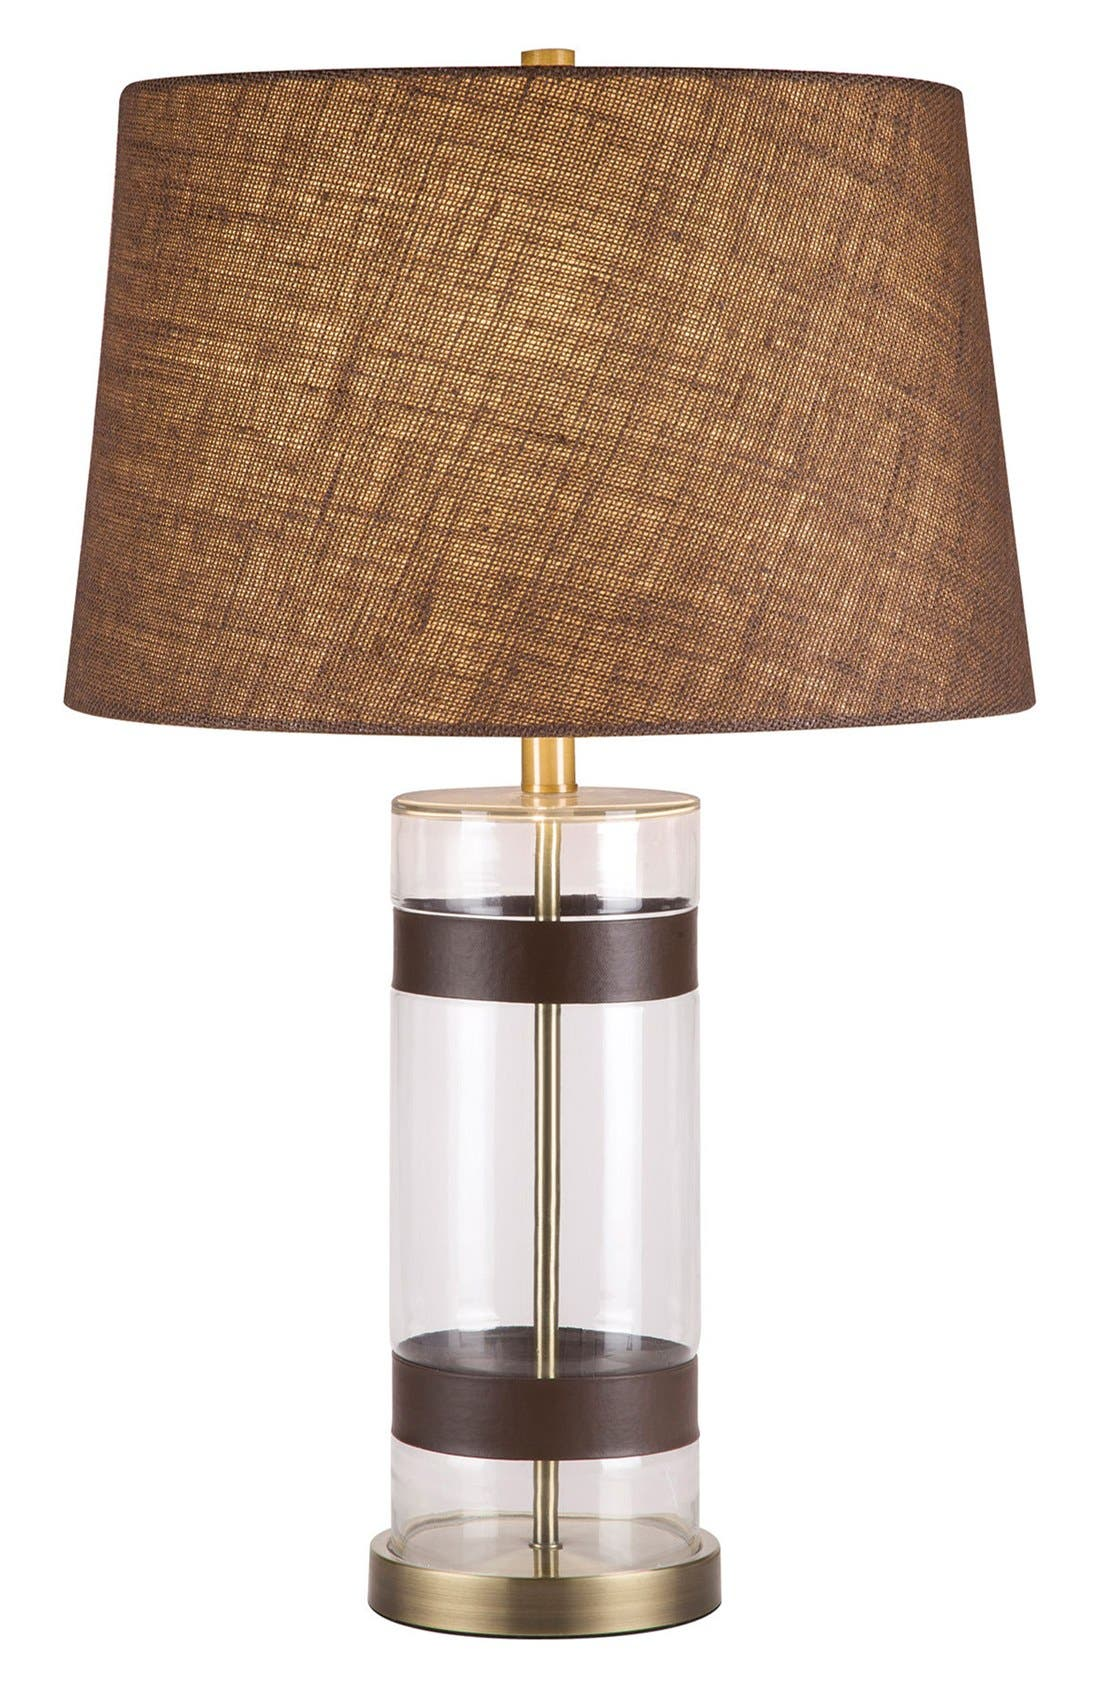 JAlexander Glass & Faux Leather Table Lamp,                         Main,                         color, White